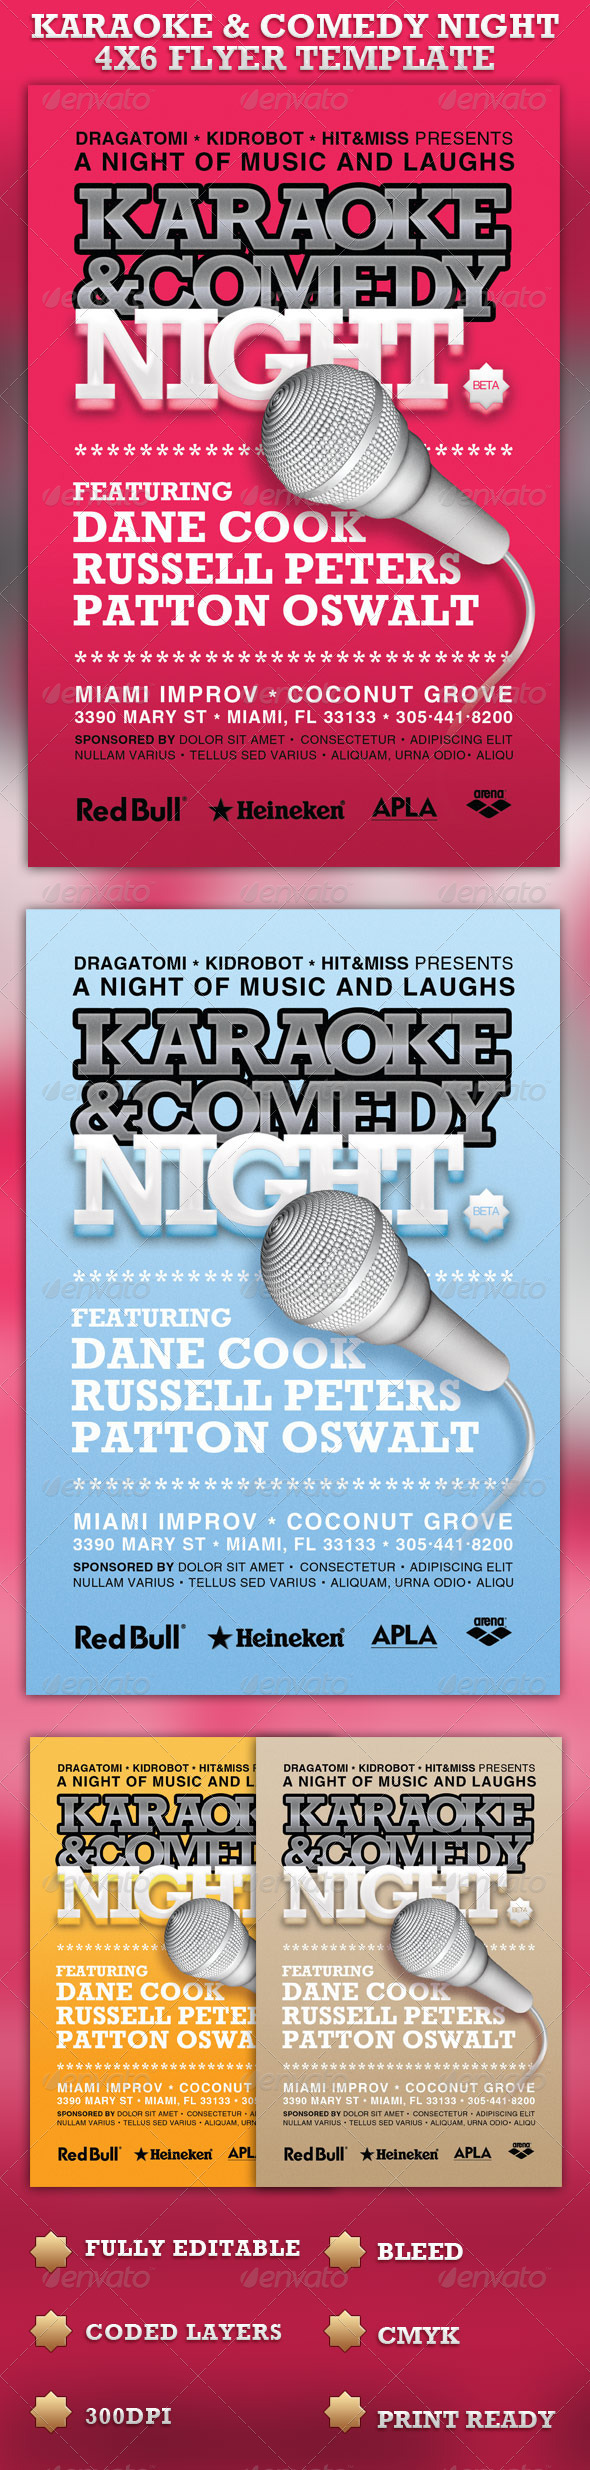 GraphicRiver Karaoke & Comedy Night 4x6 Flyer Template 1089965